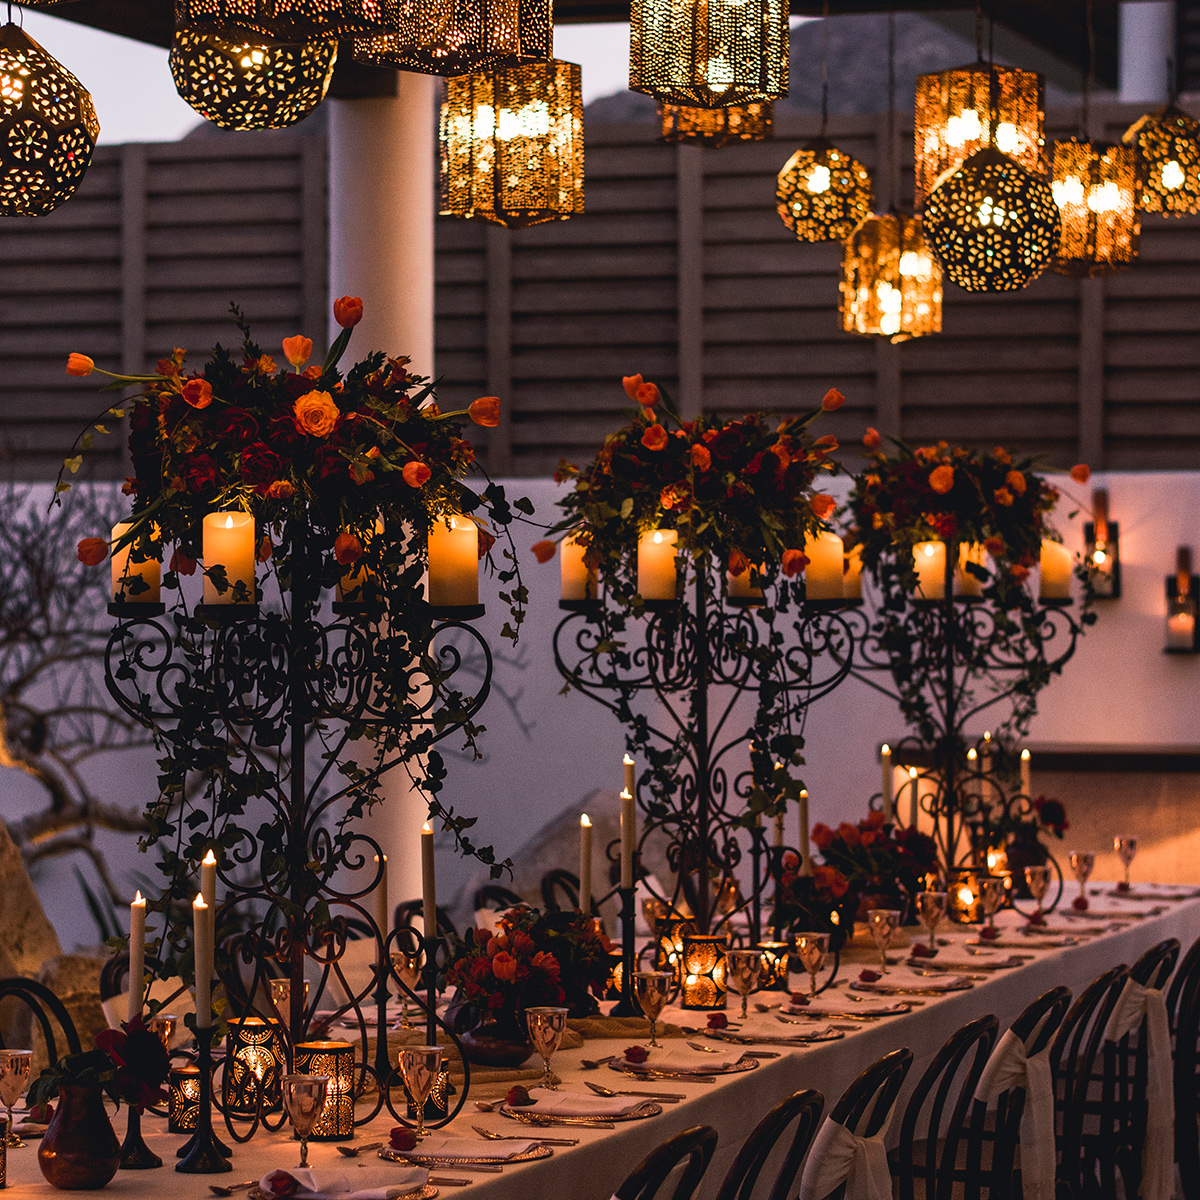 chileno bay wedding design by del cabo weddings photo by dennis berti 1 event design and wedding planning 9